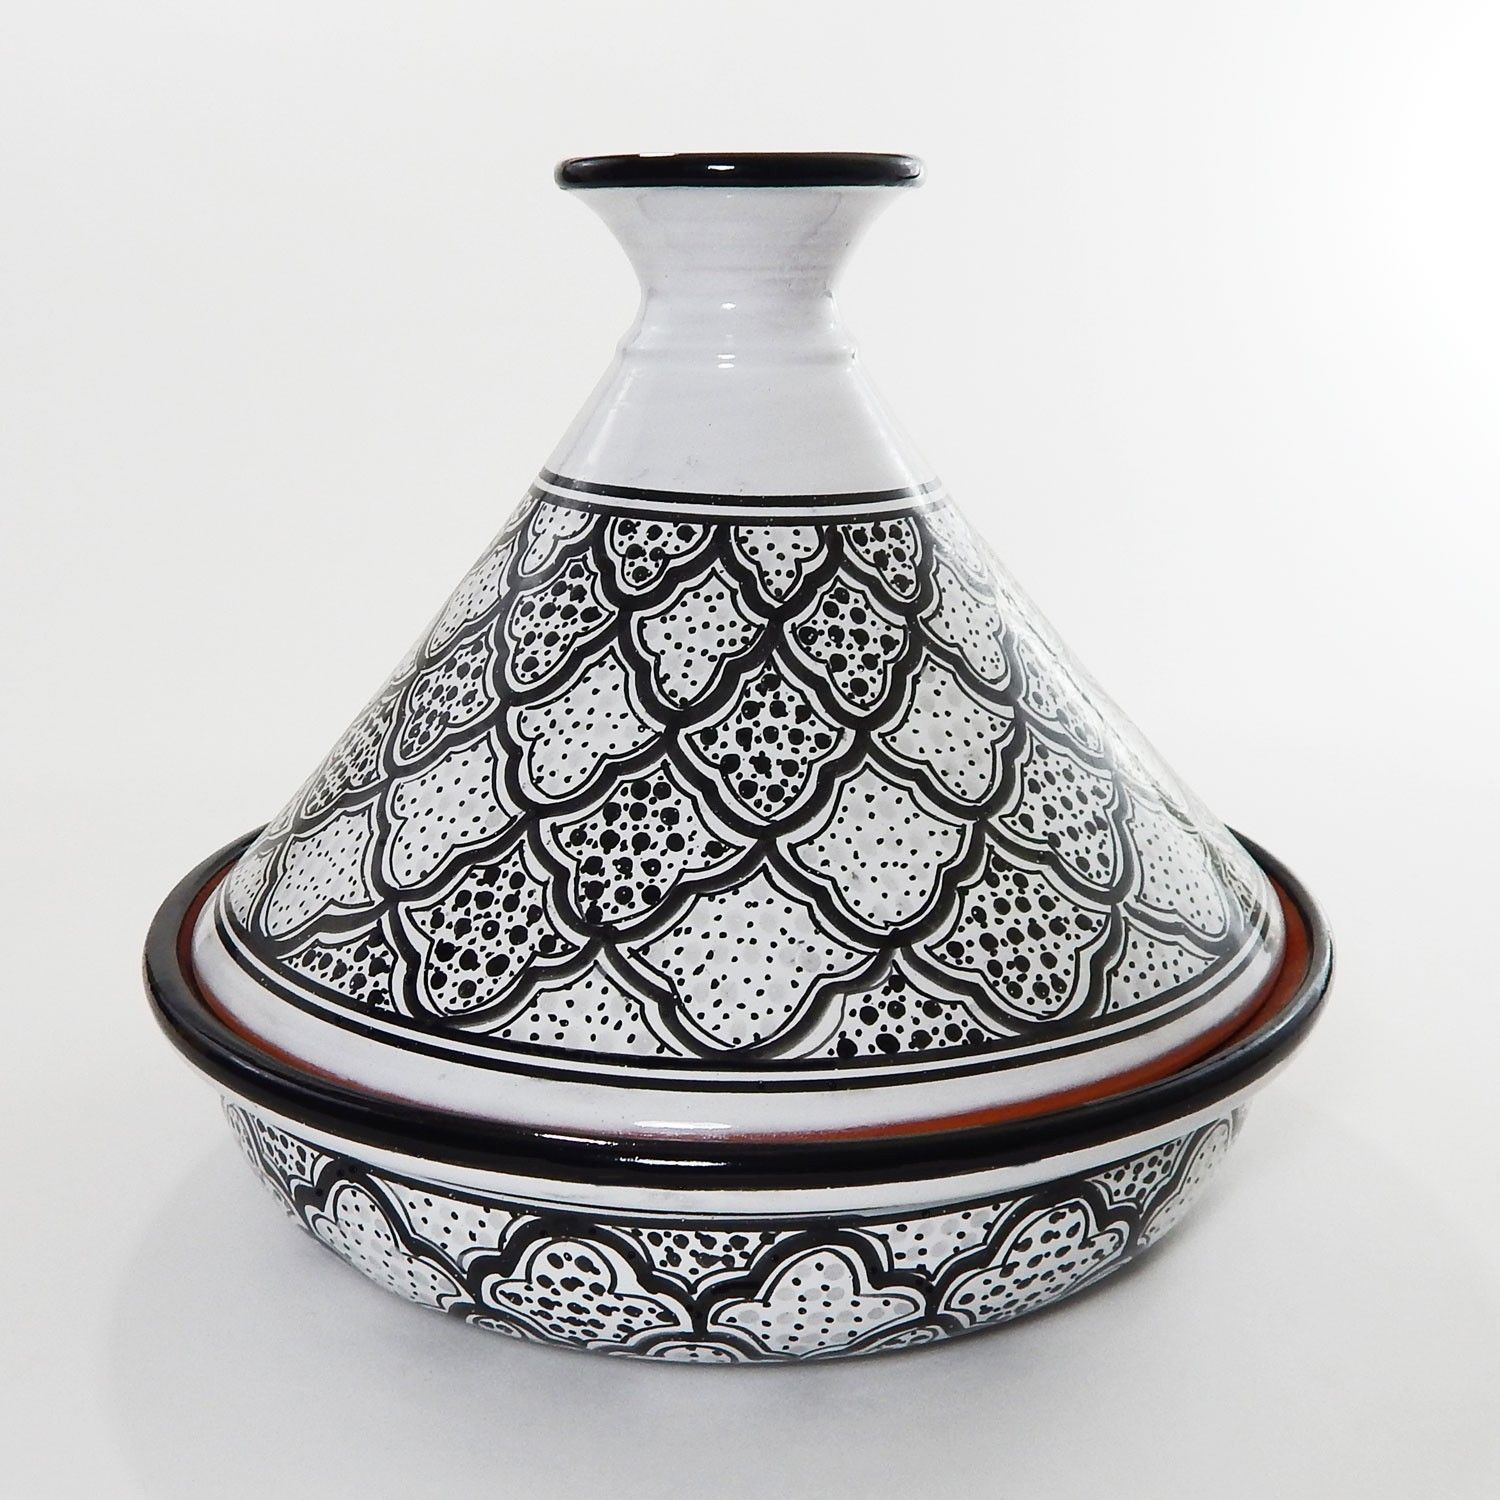 Le Souk Ceramique Handmade Black White Honeycomb Ceramic 12 Inch Cookable Tagine Tunisia 12in Honey Design